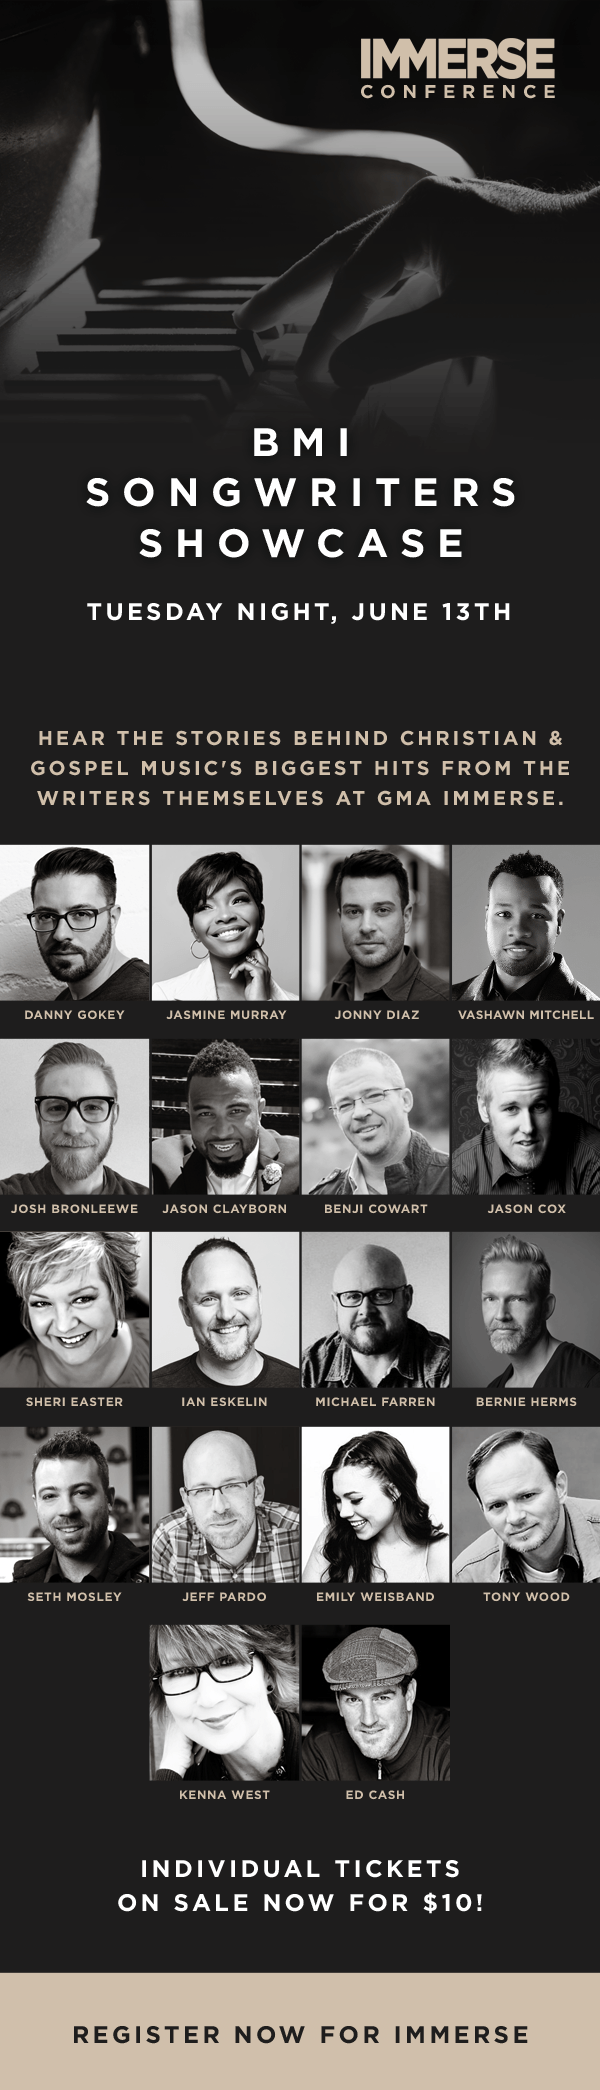 Danny Gokey featured singer songwriter at GMA/BMI event